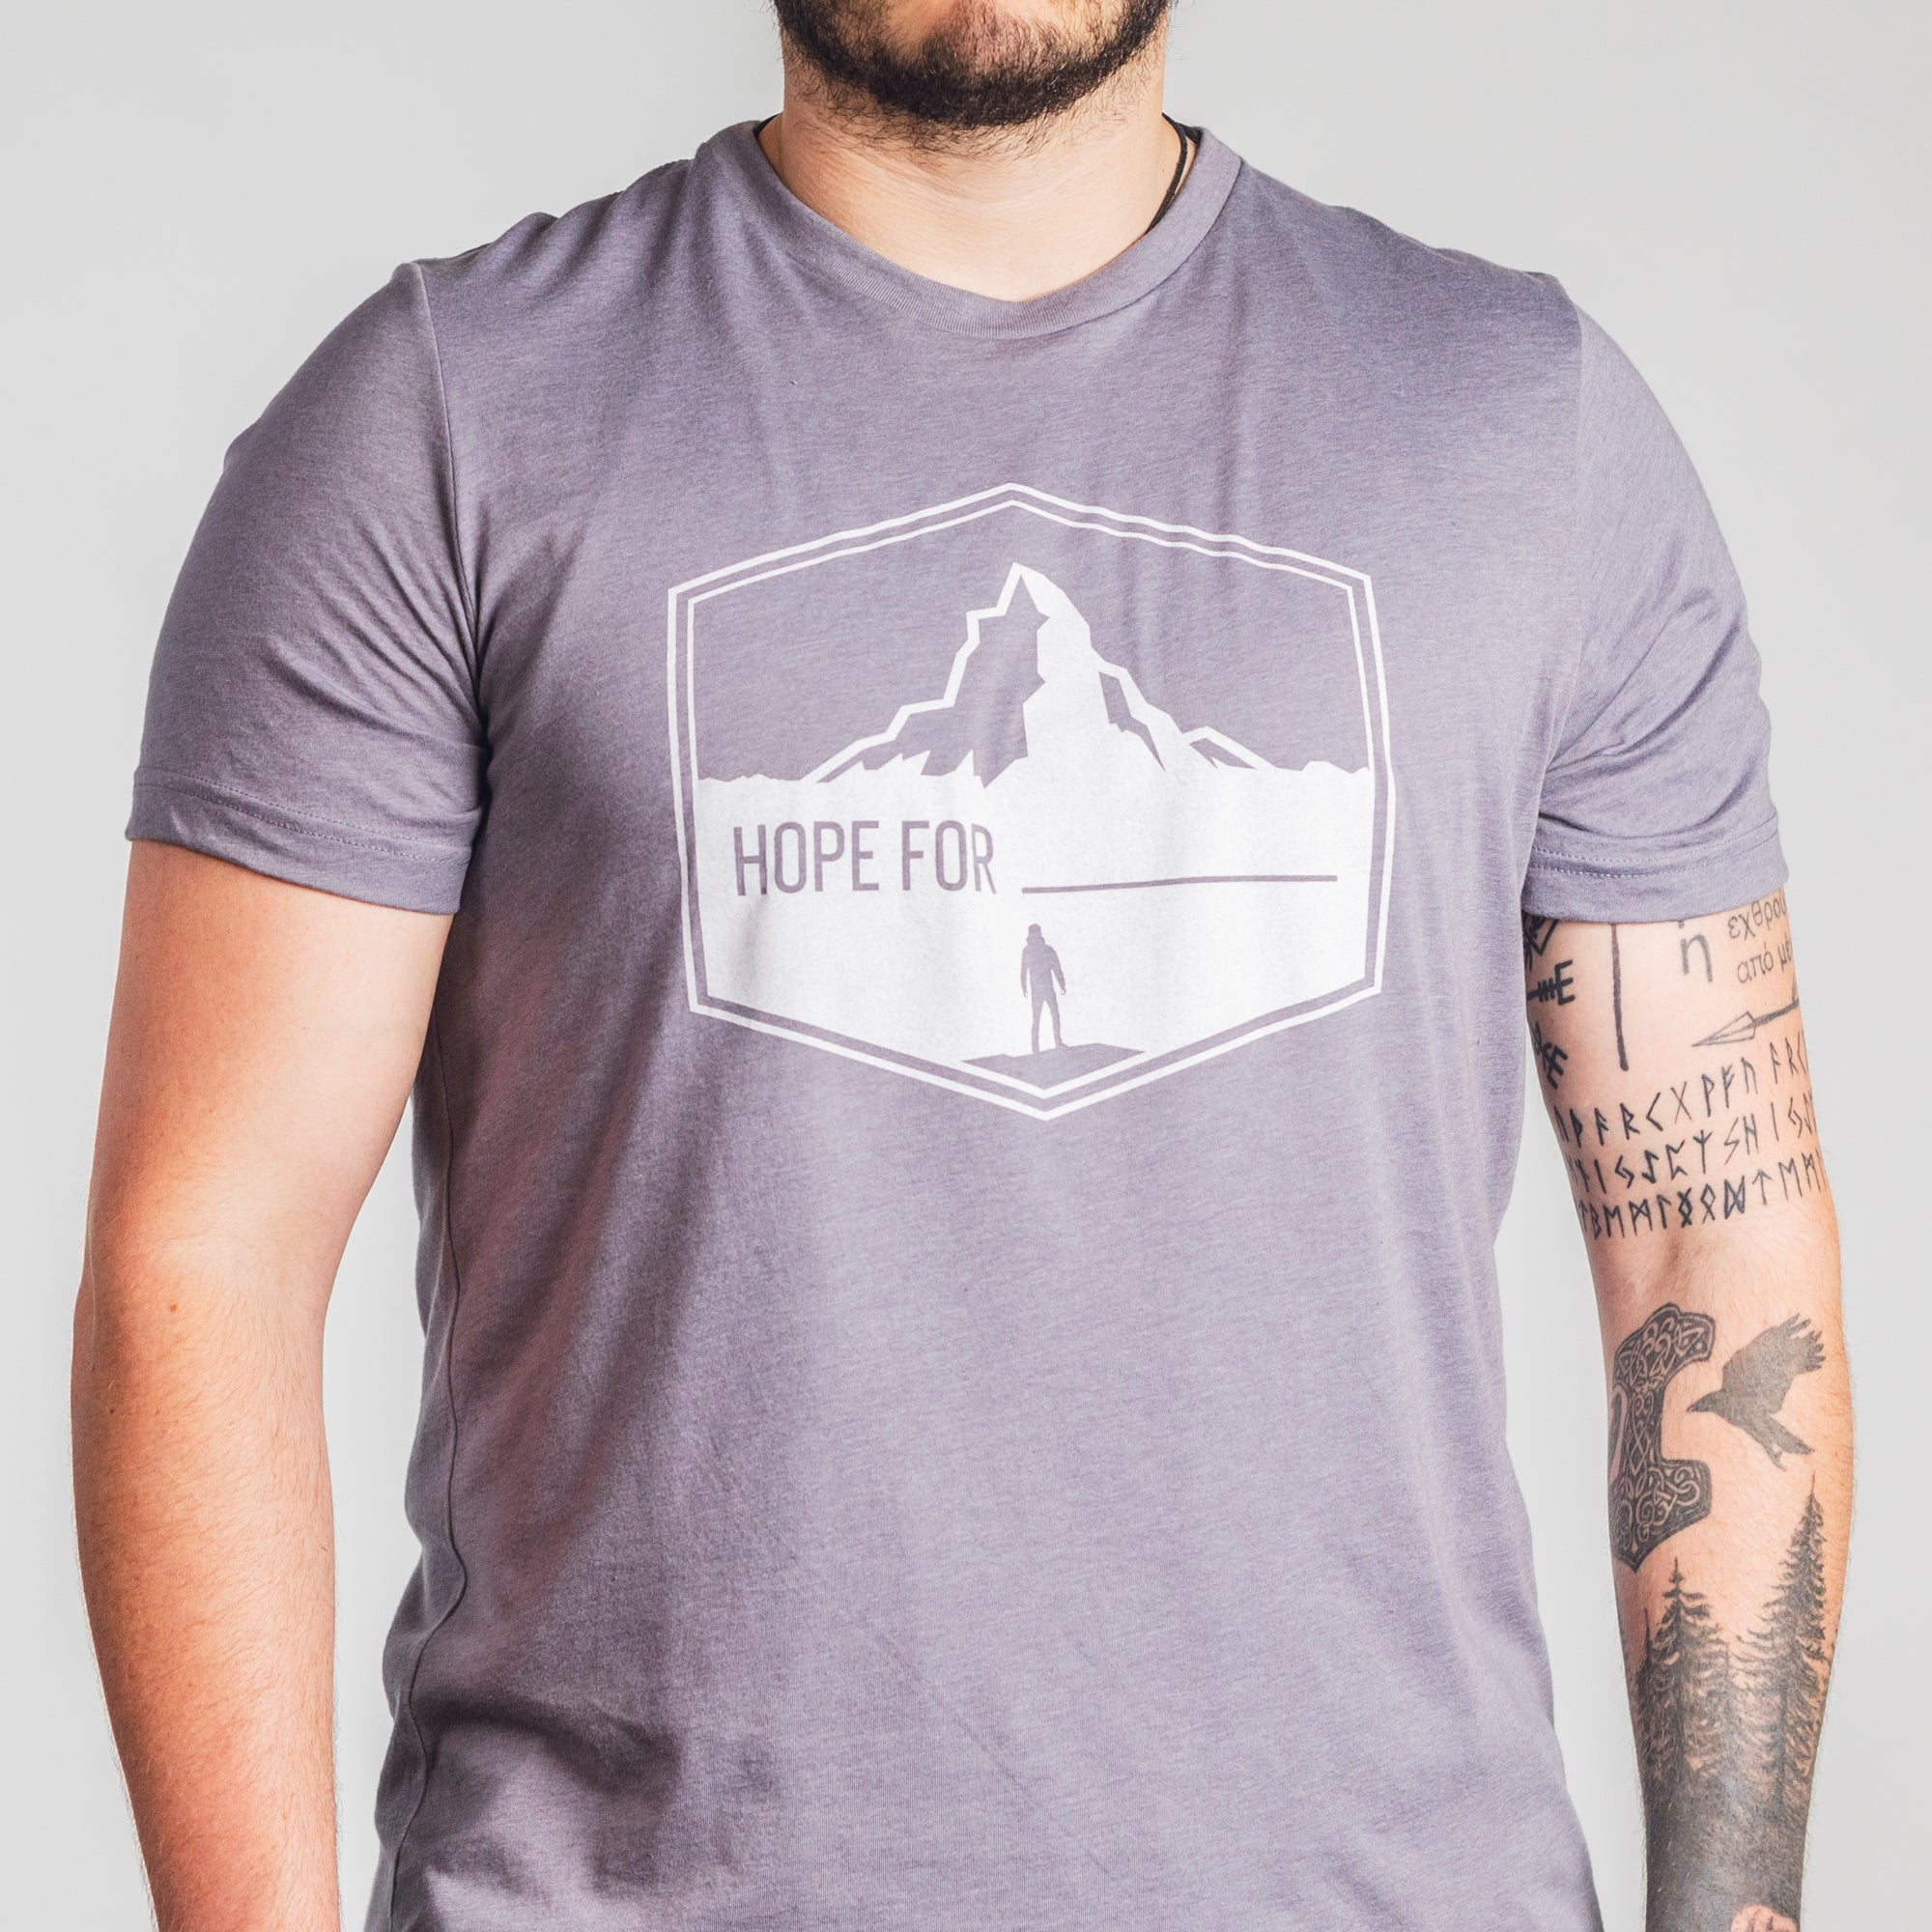 Hope For - Short Sleeve Shirt - Heather Storm